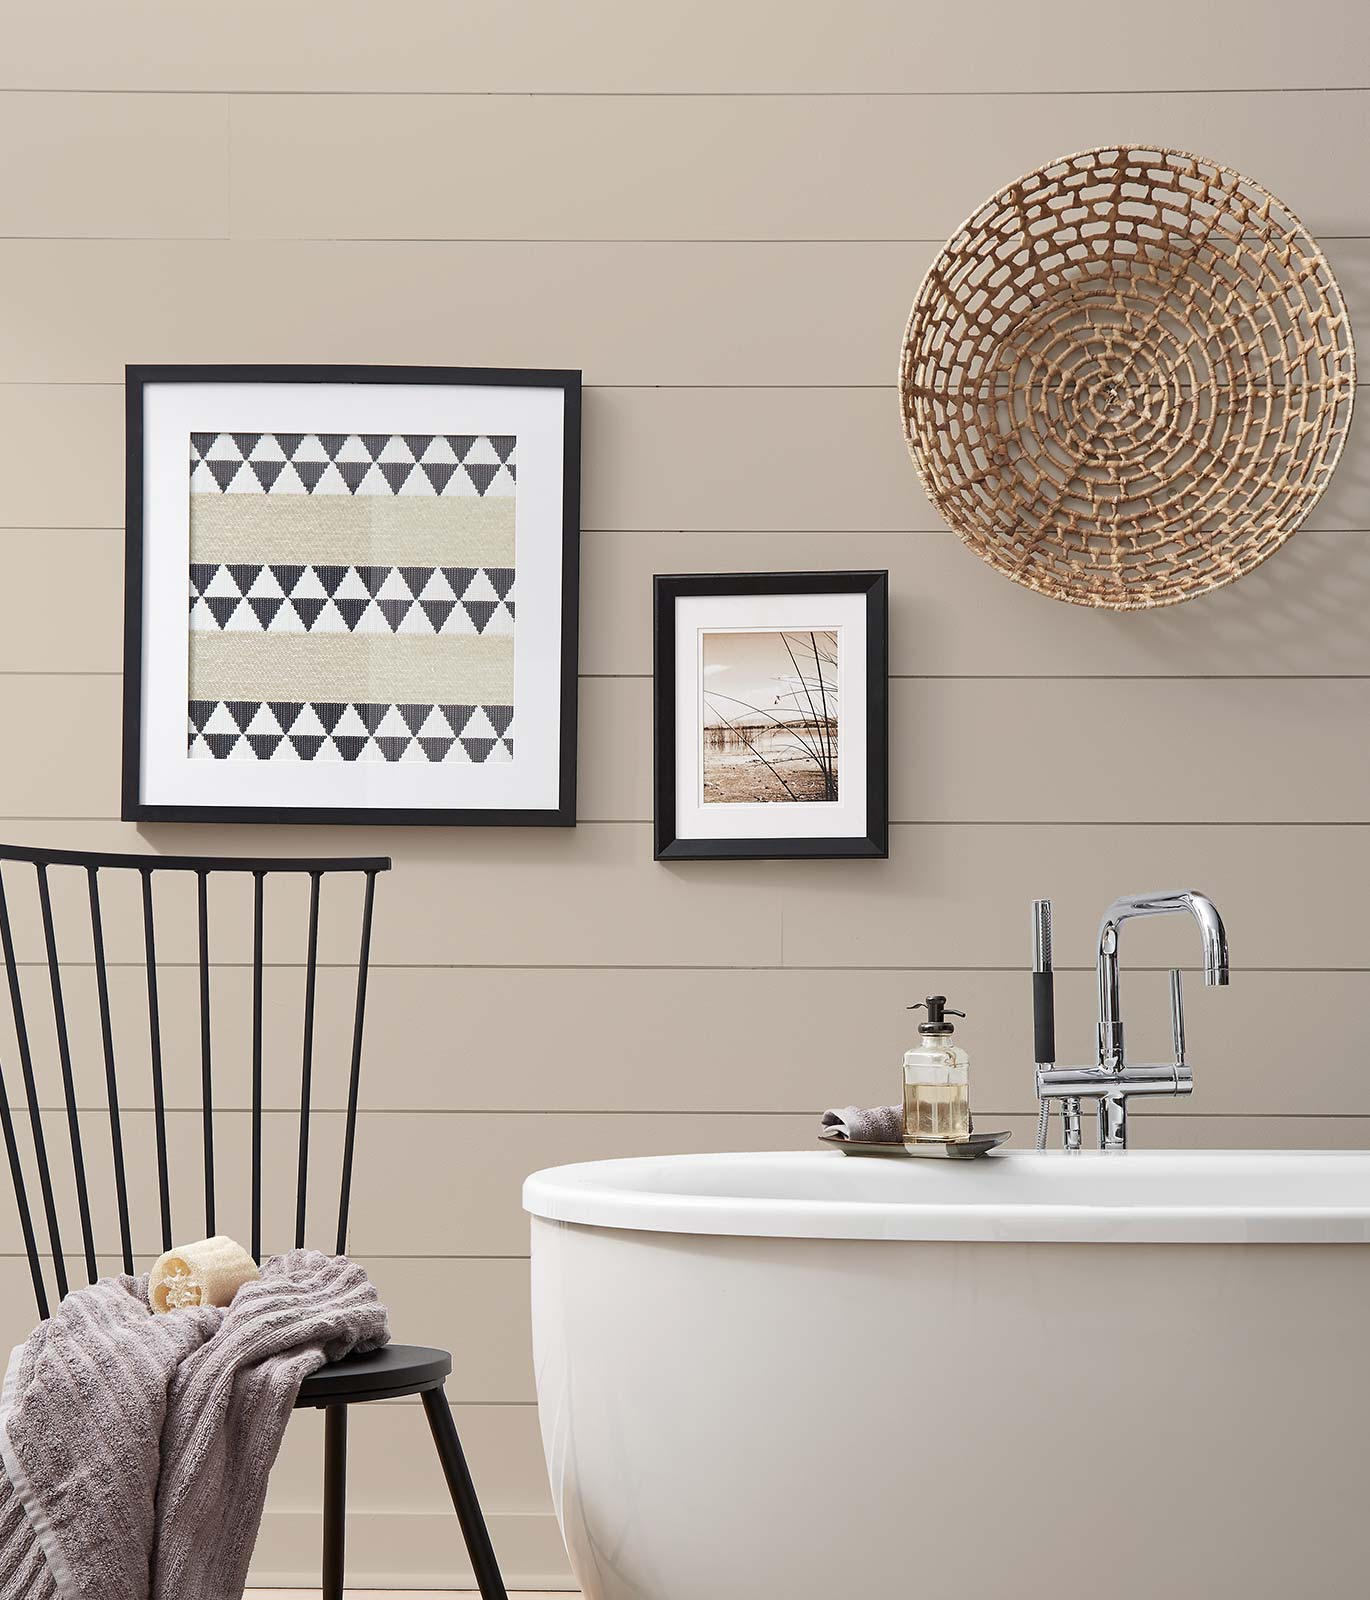 A bathroom painted in a beige color showing corner of a tub with a simple chair and blanket. Décor gives off a casual and comfortable feeling.